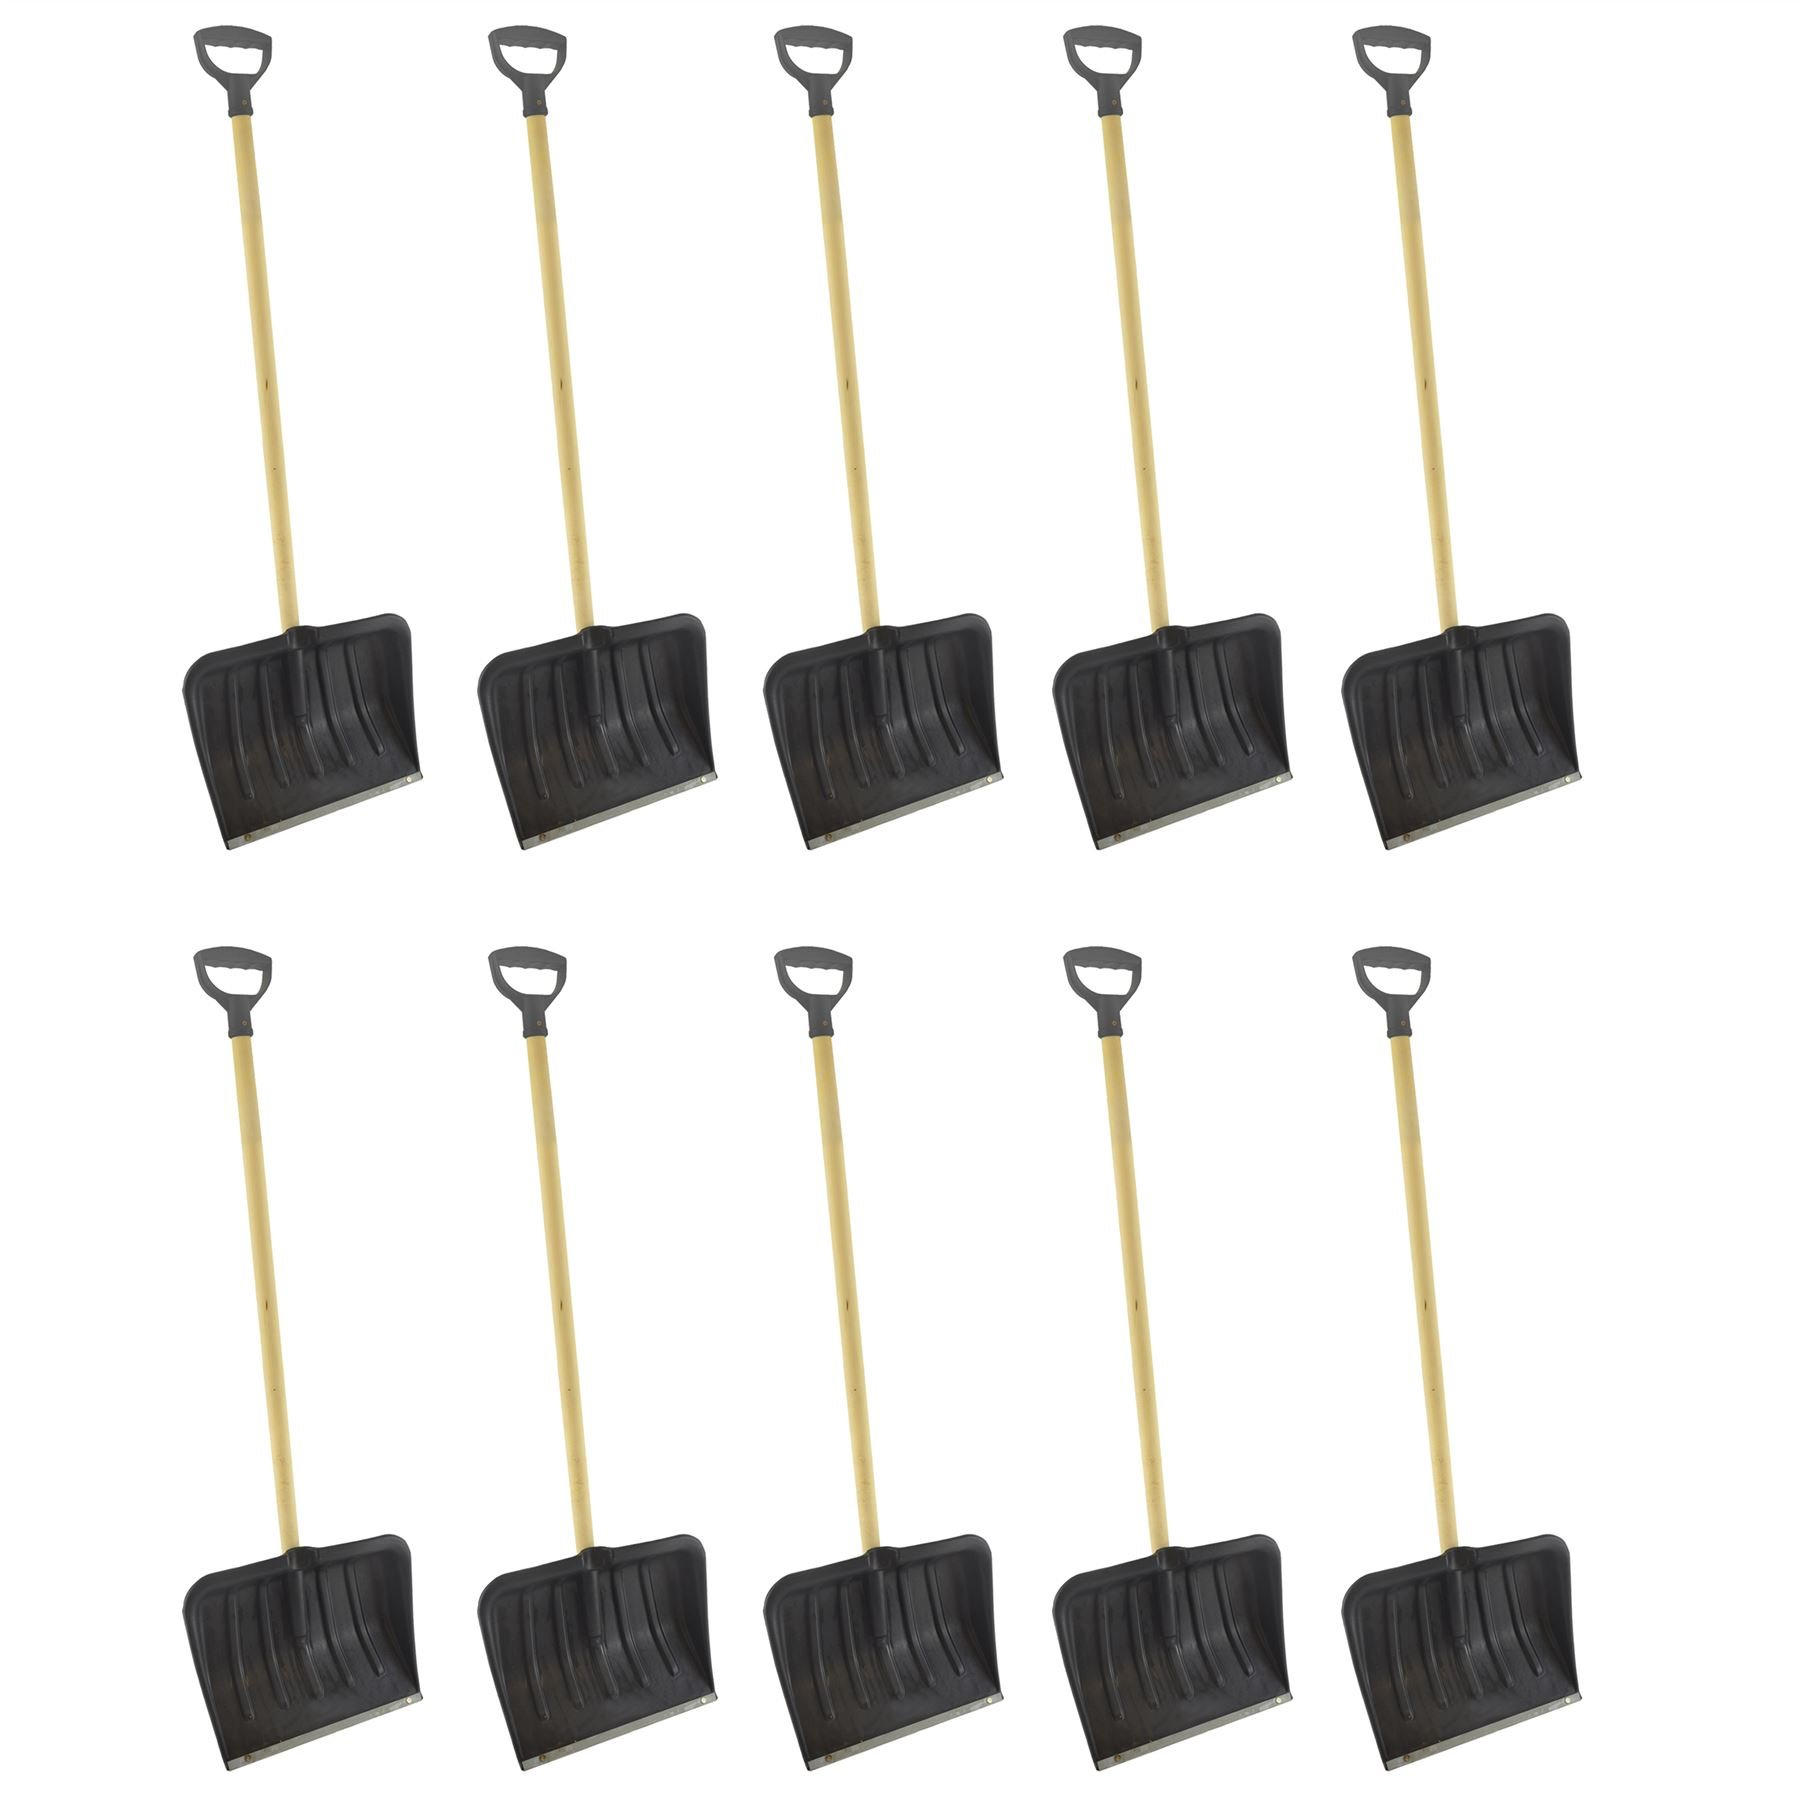 AB Tools 10 Long Handle Snow Leaf Shovel Scoop Remover Removal Clearer Clearing